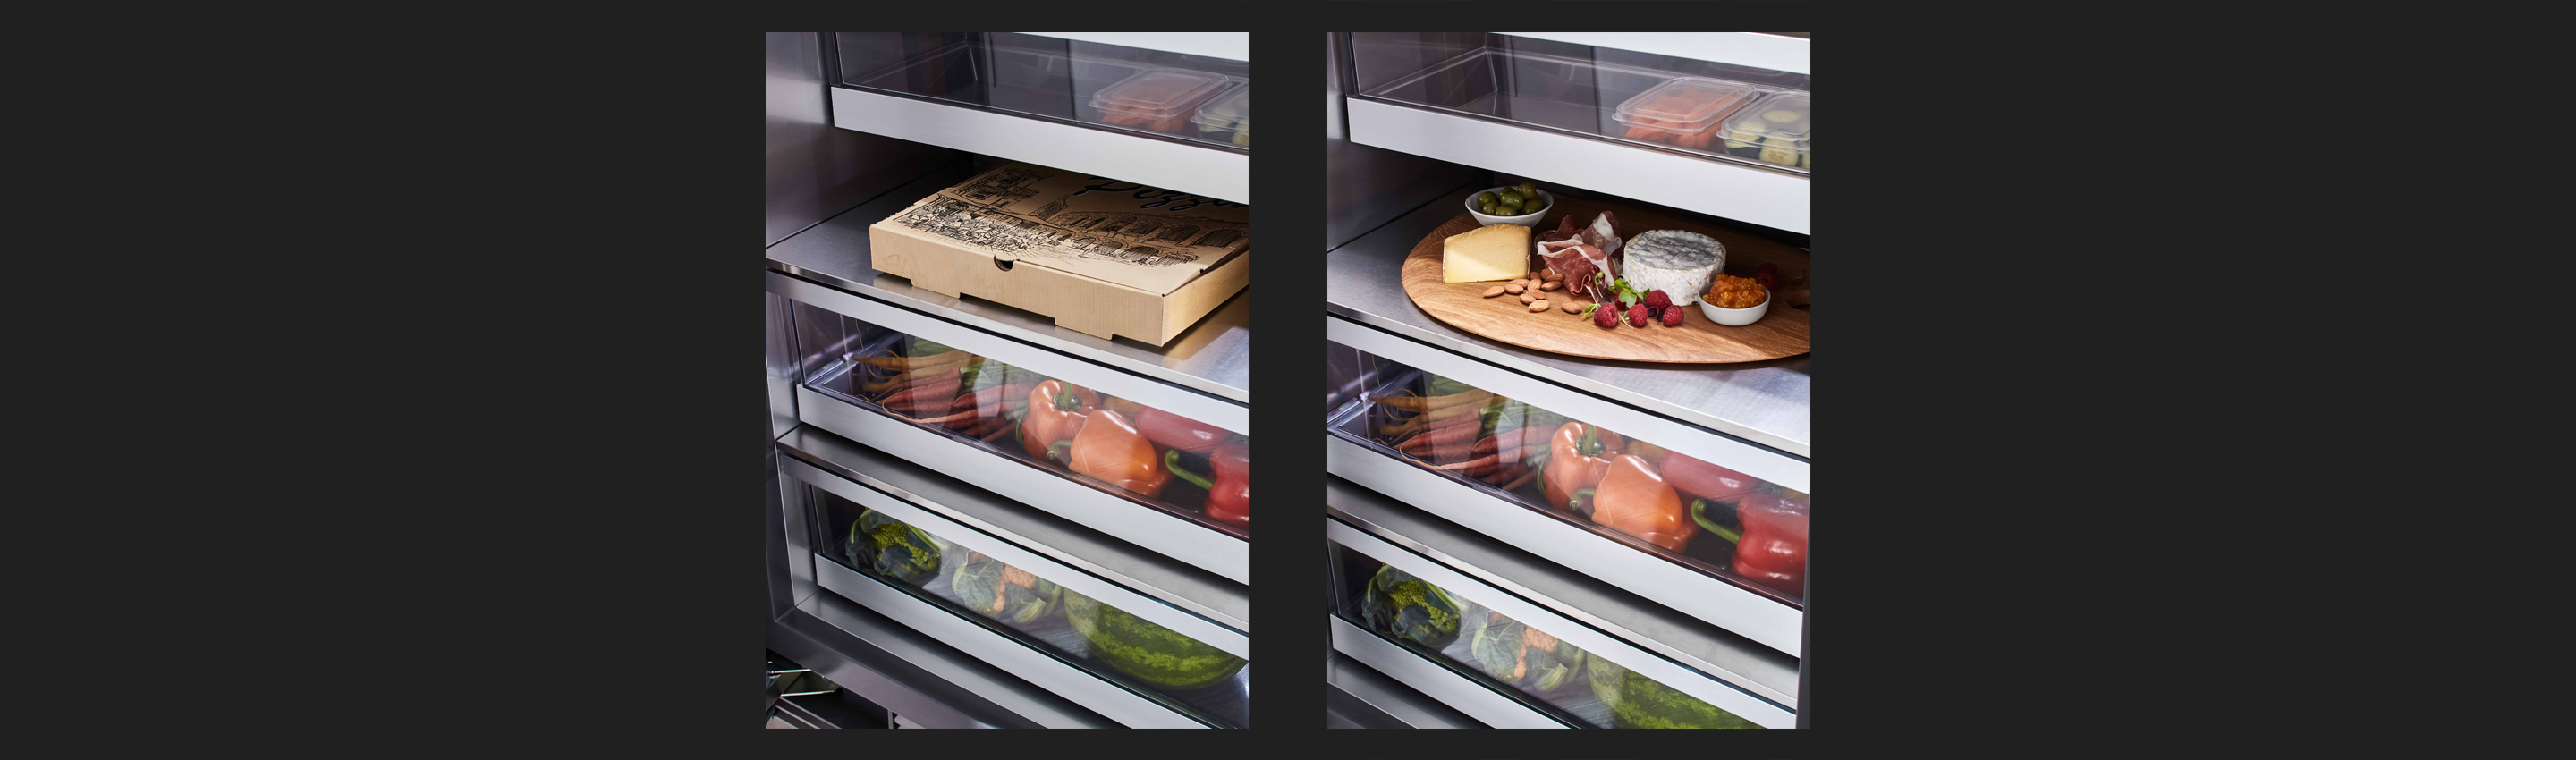 24-inch Integrated Column Refrigerator Snack Drawer